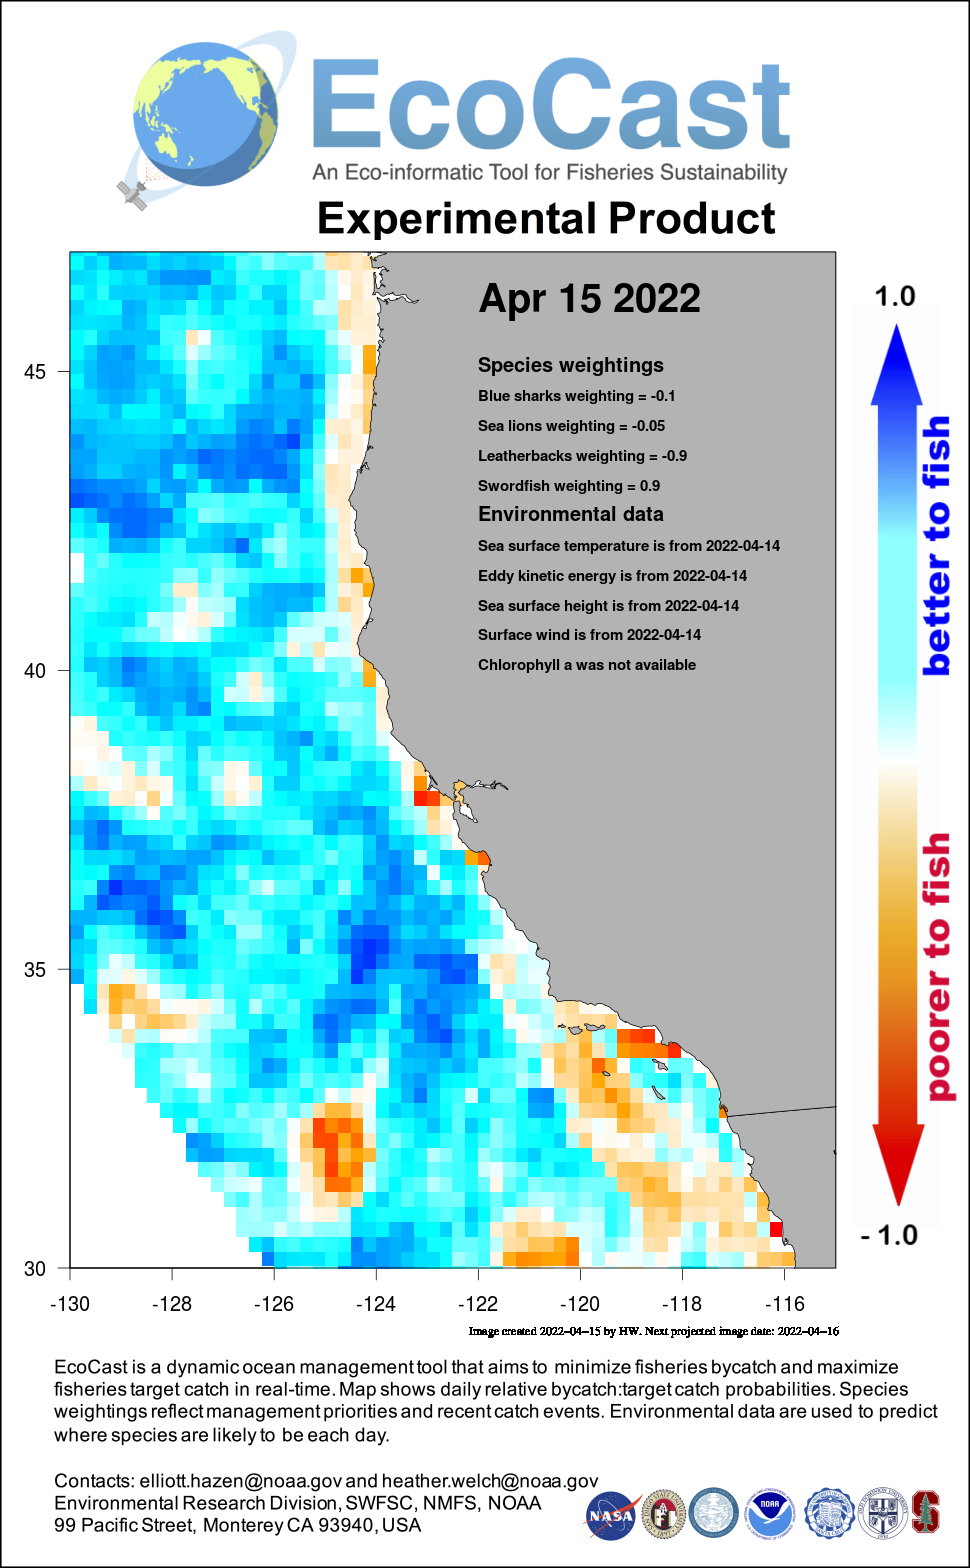 Mean sea surface temperature off Southern California - 4 days ago